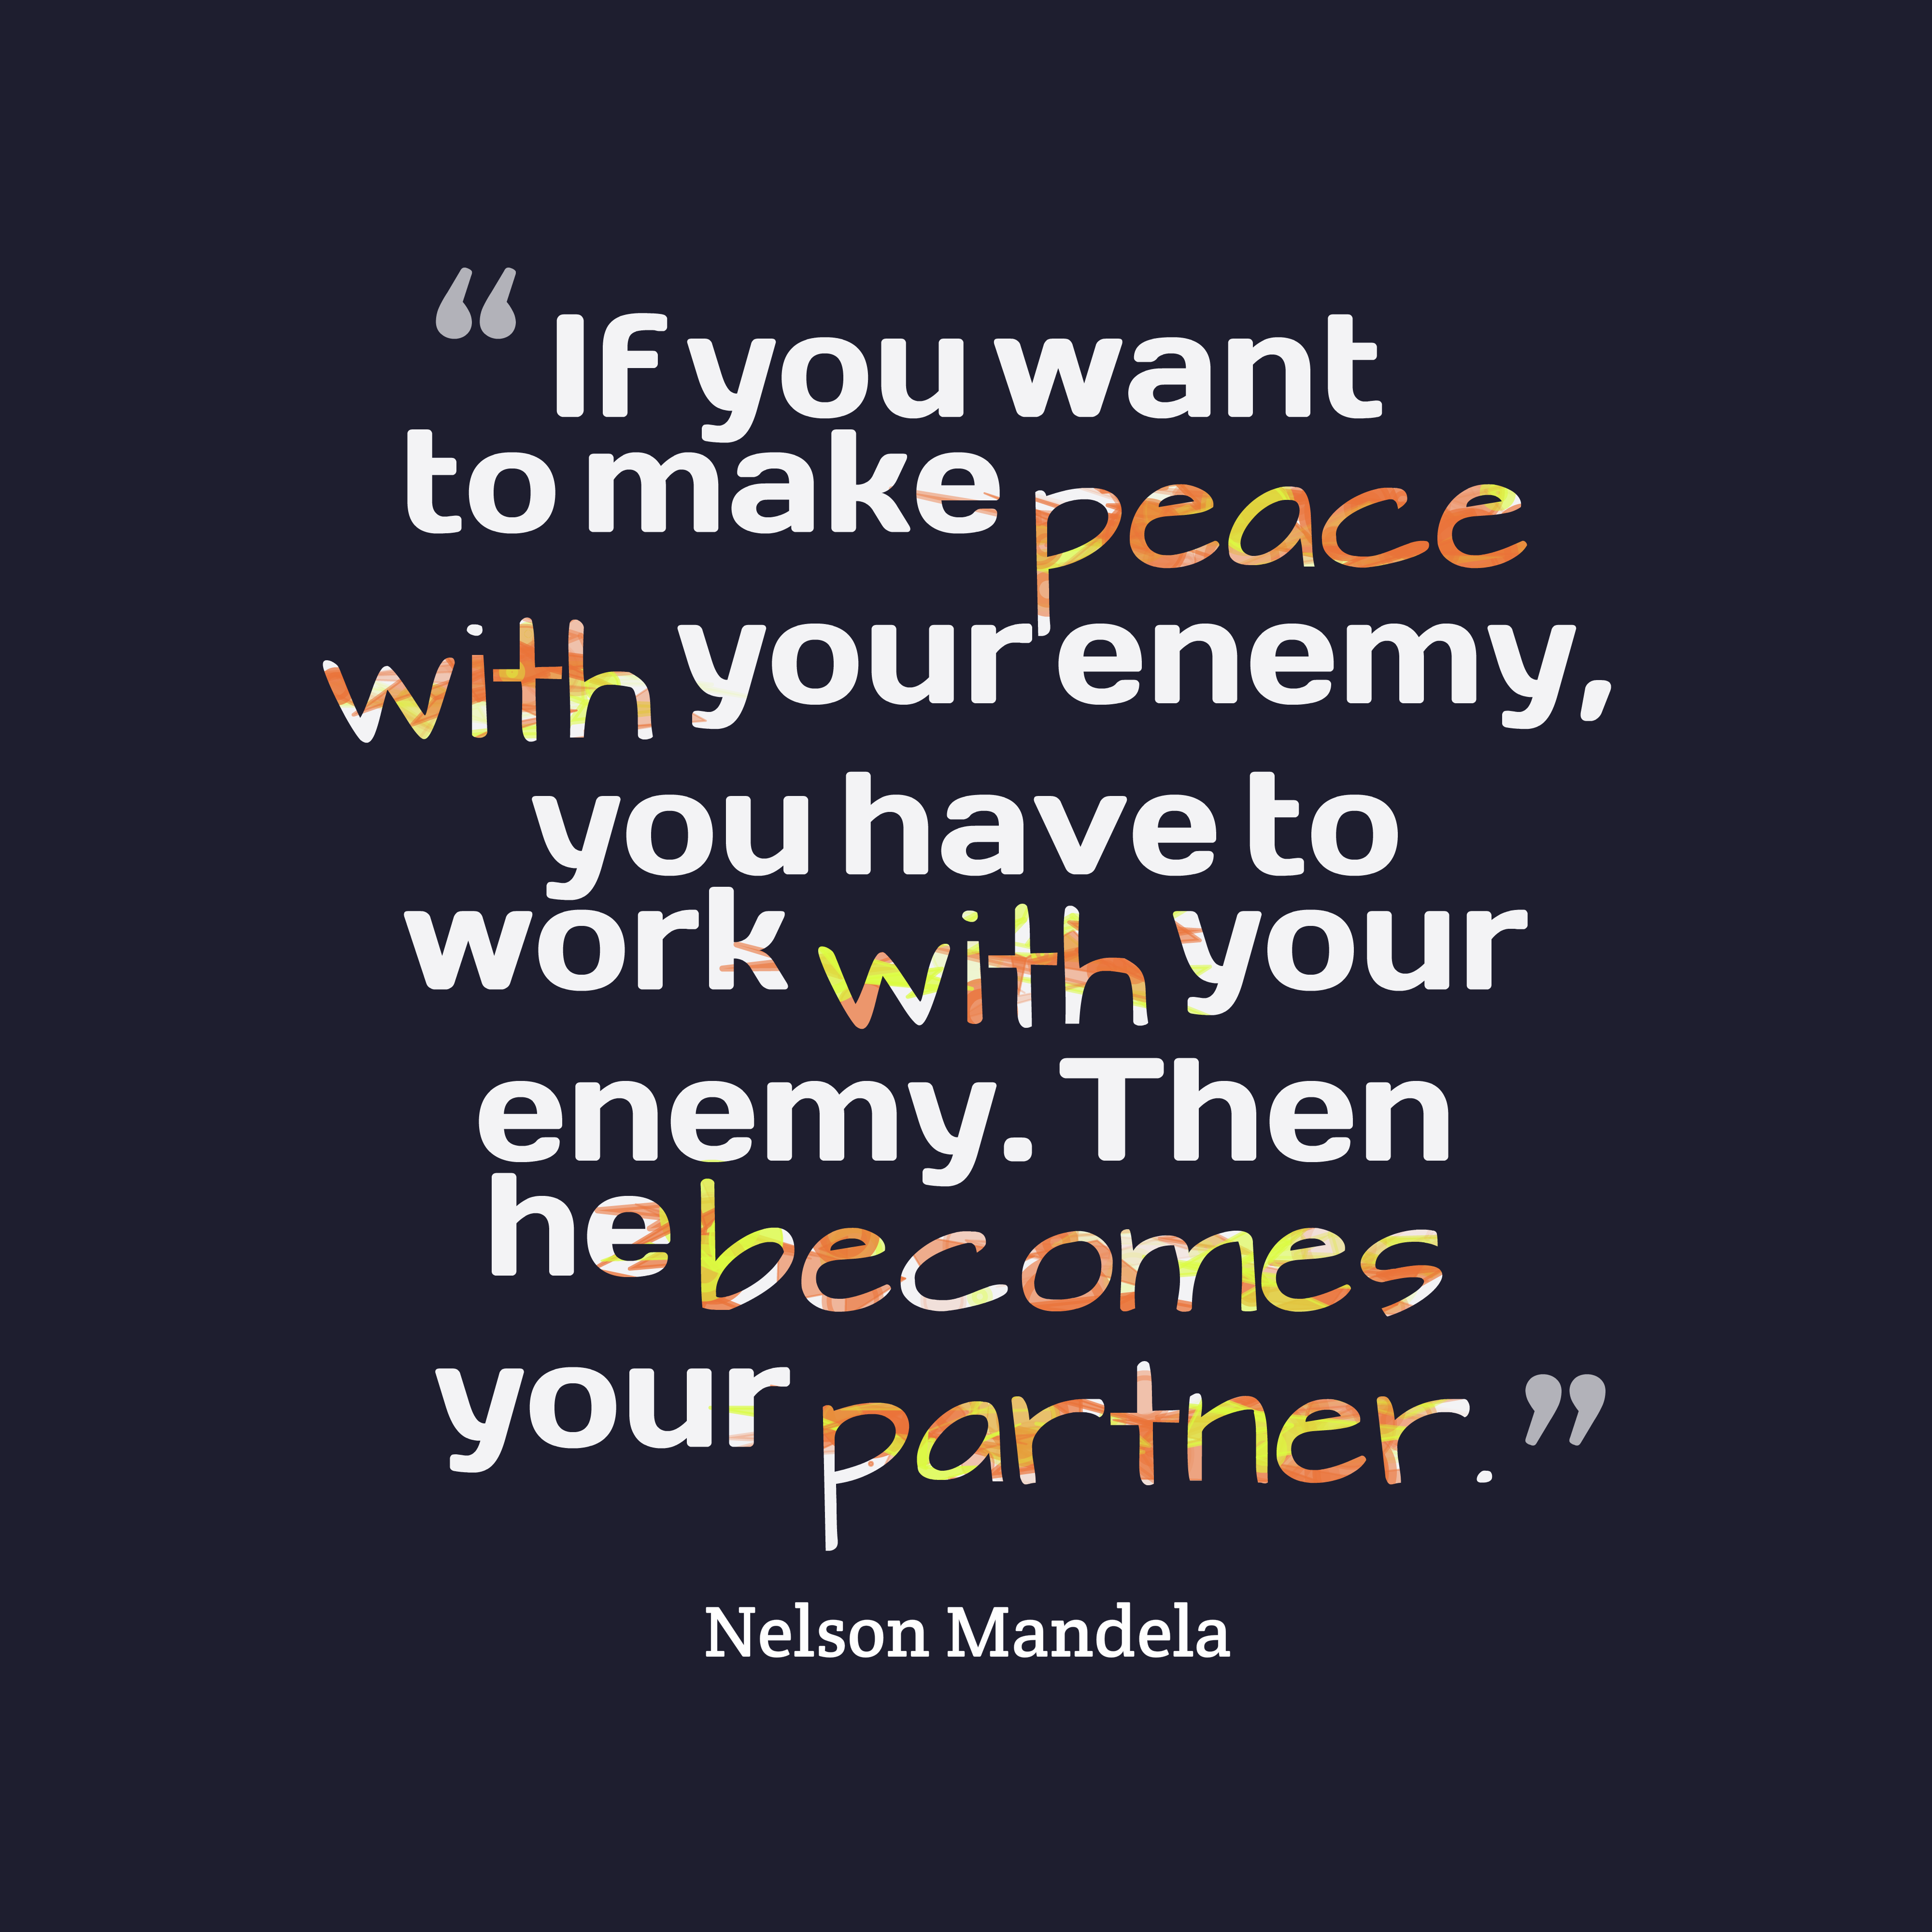 Nelson Mandela Quote About Peace